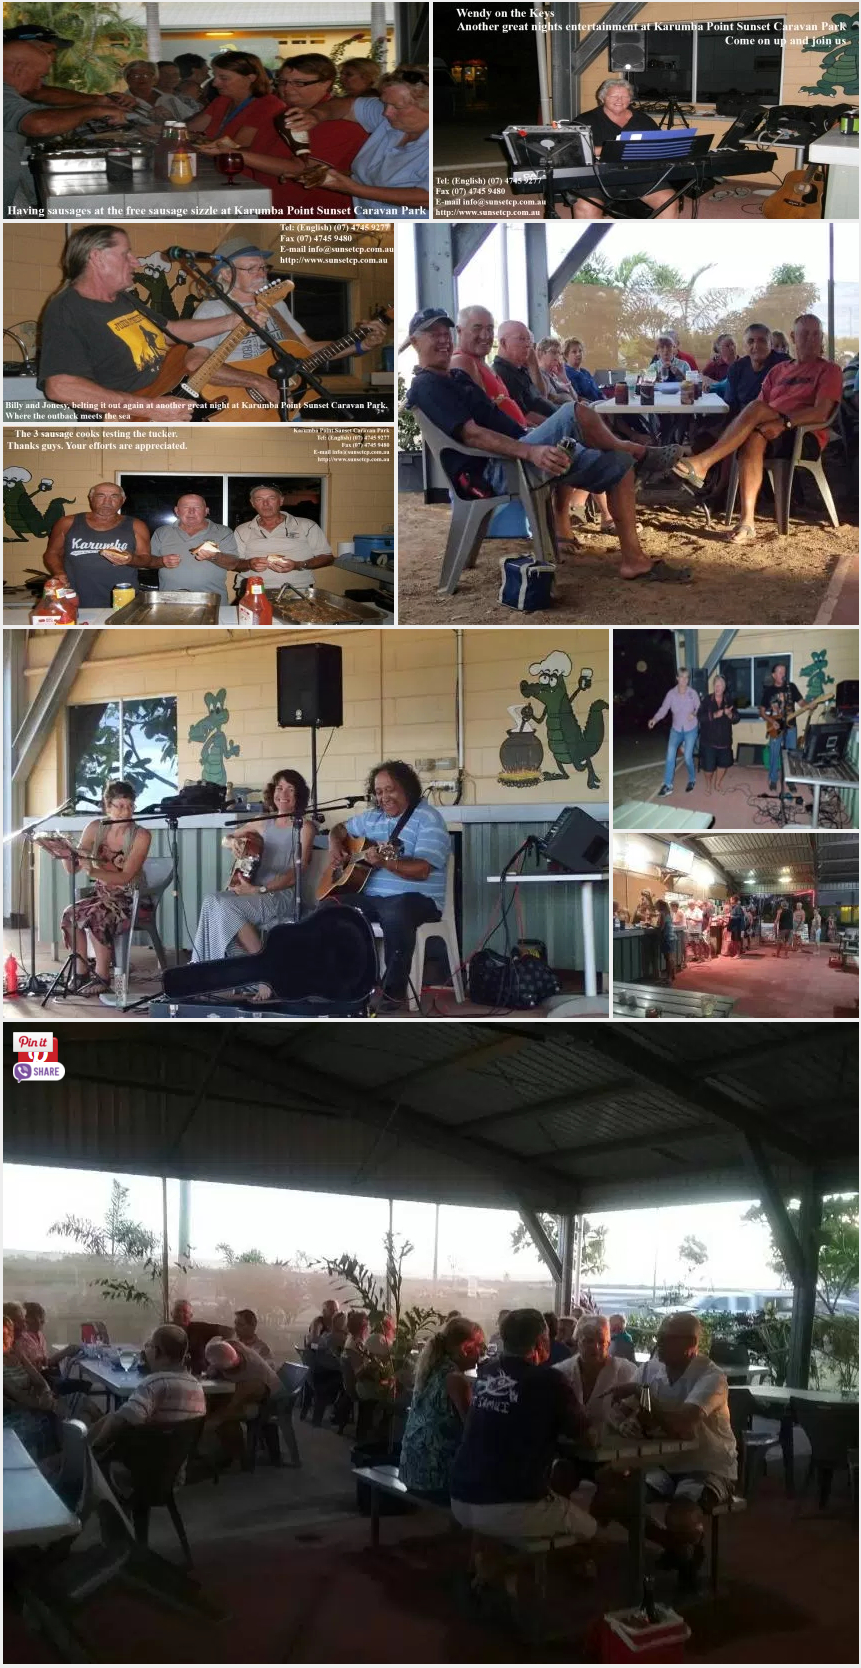 Karumba Point Sunset Caravan Park Friendly Environmnet Cafeteria